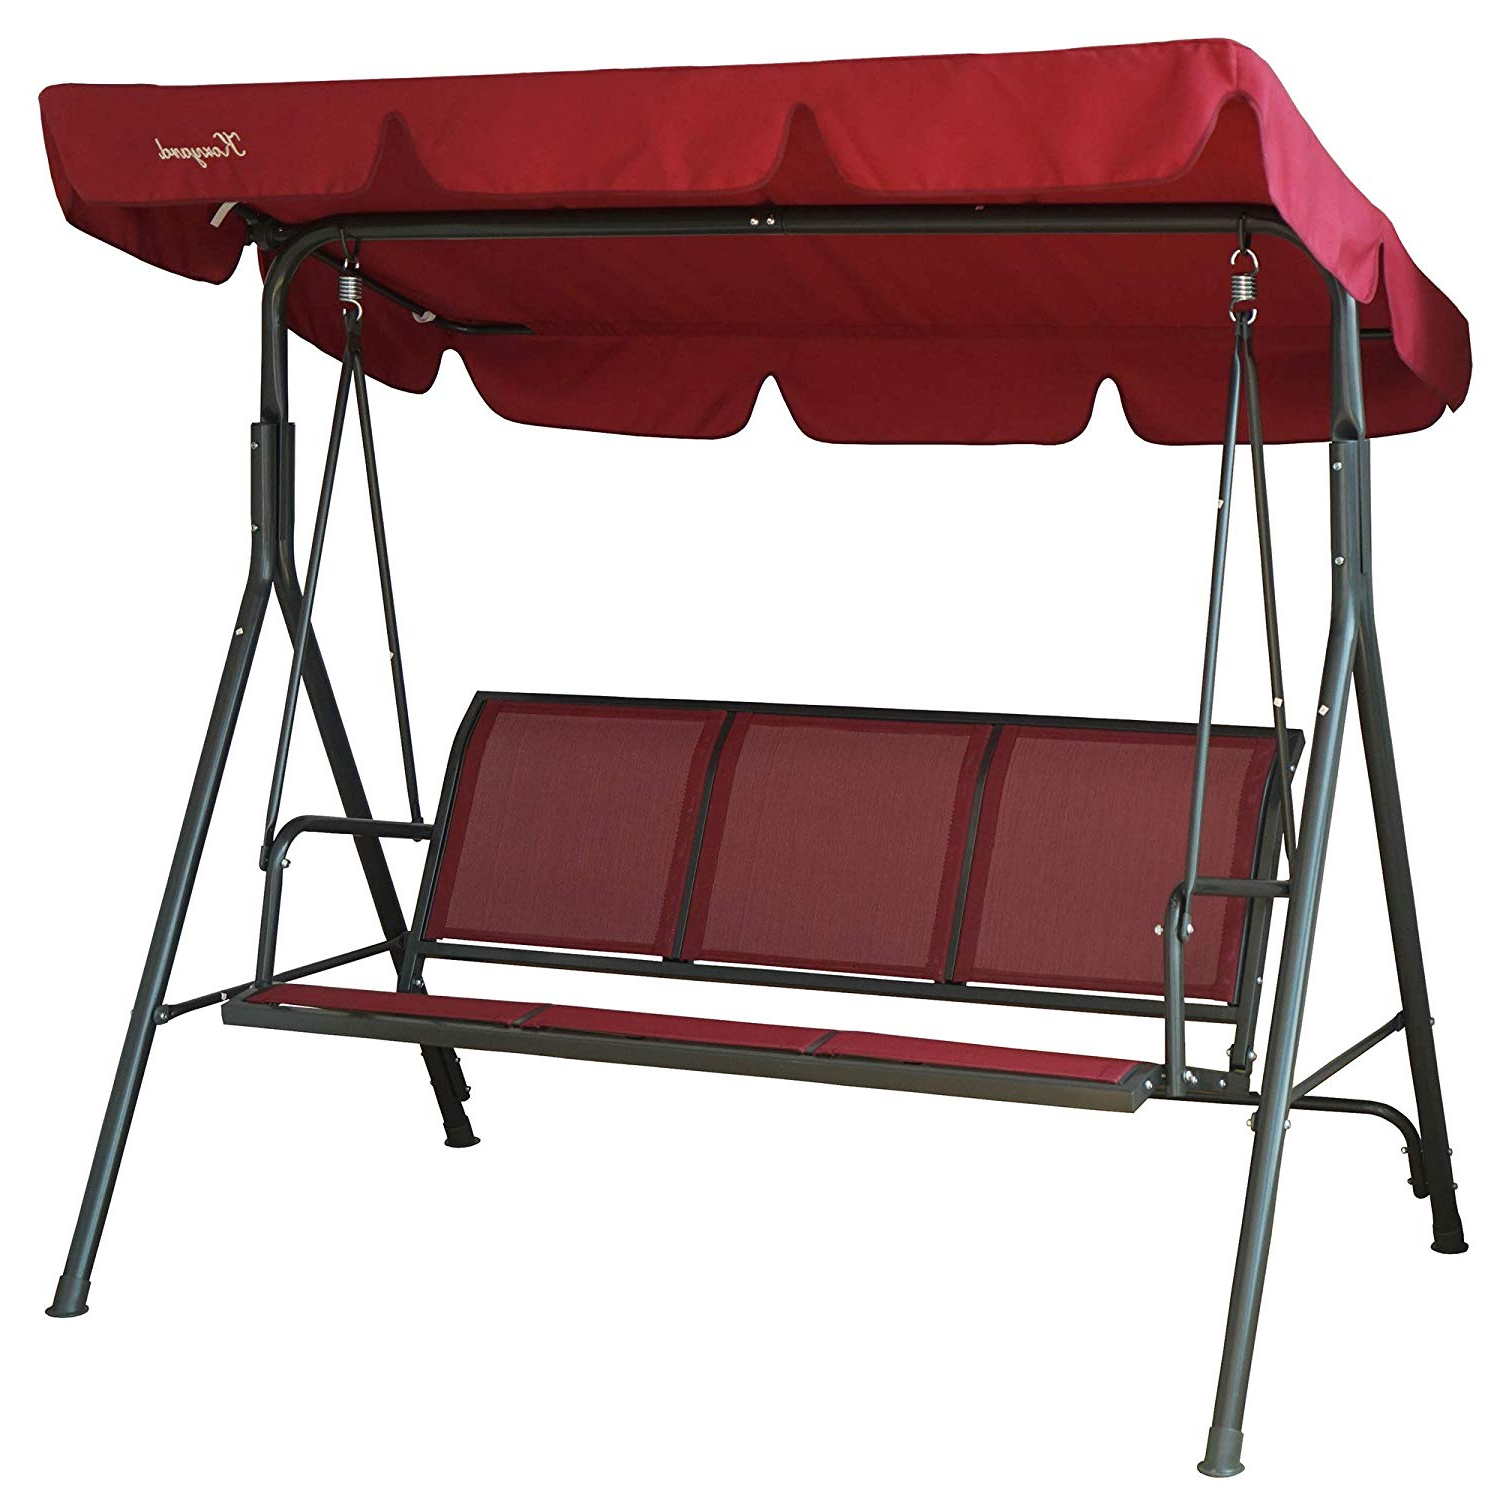 Recent Kozyard Belle 3 Person Outdoor Patio Swing With Strong Weather Resistant Powder Coated Steel Frame And Textilence Seats (red) For 3 Person Red With Brown Powder Coated Frame Steel Outdoor Swings (View 11 of 30)